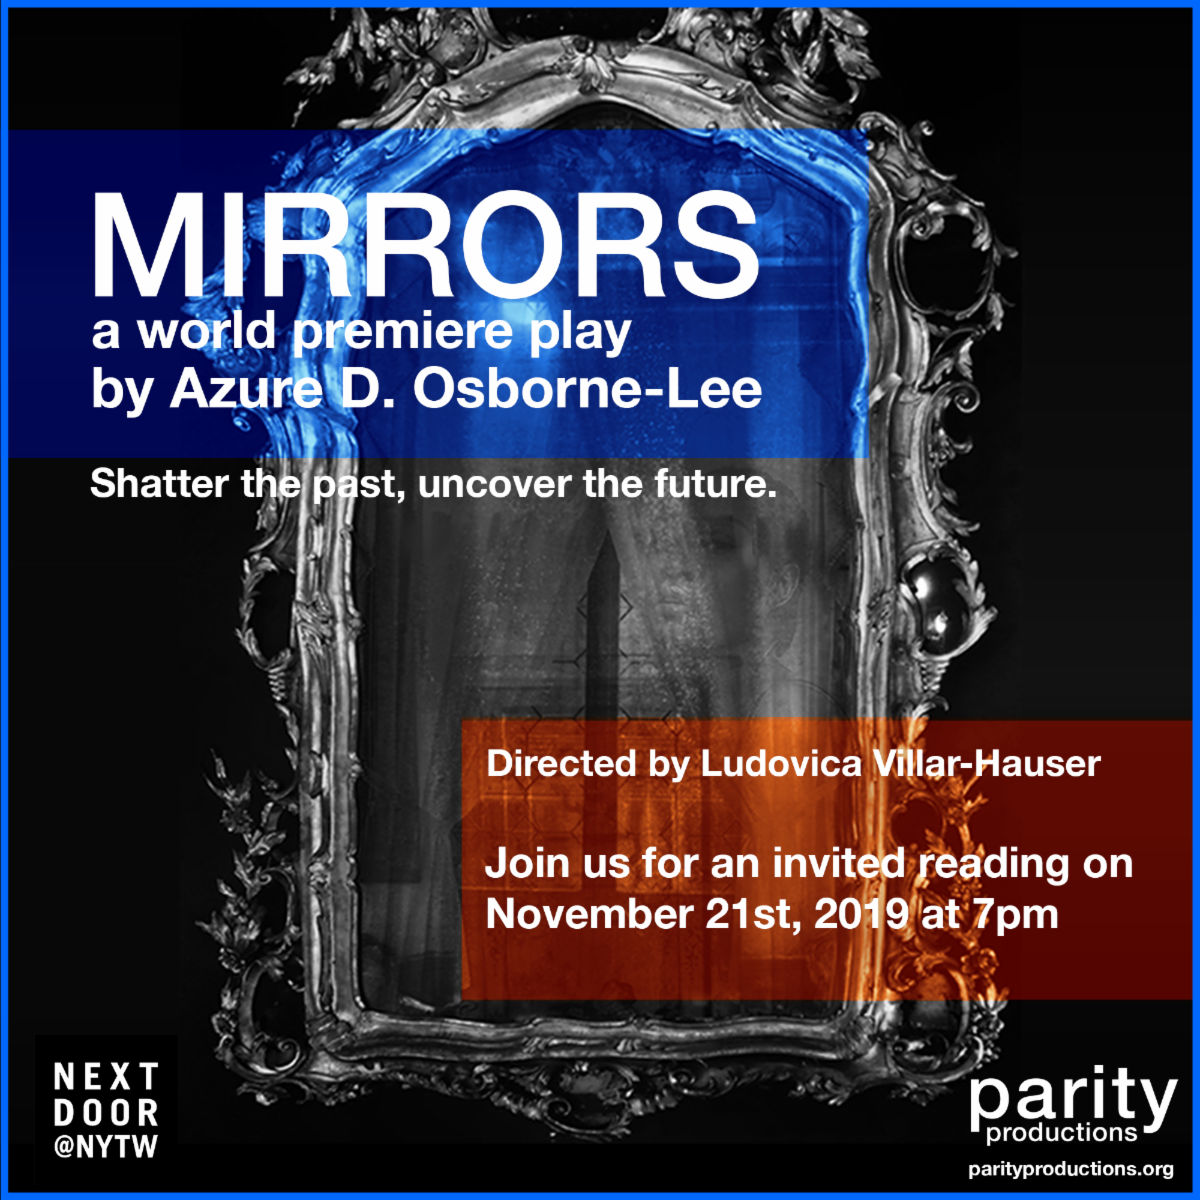 Mirrors by Azure D. Osborne-Lee